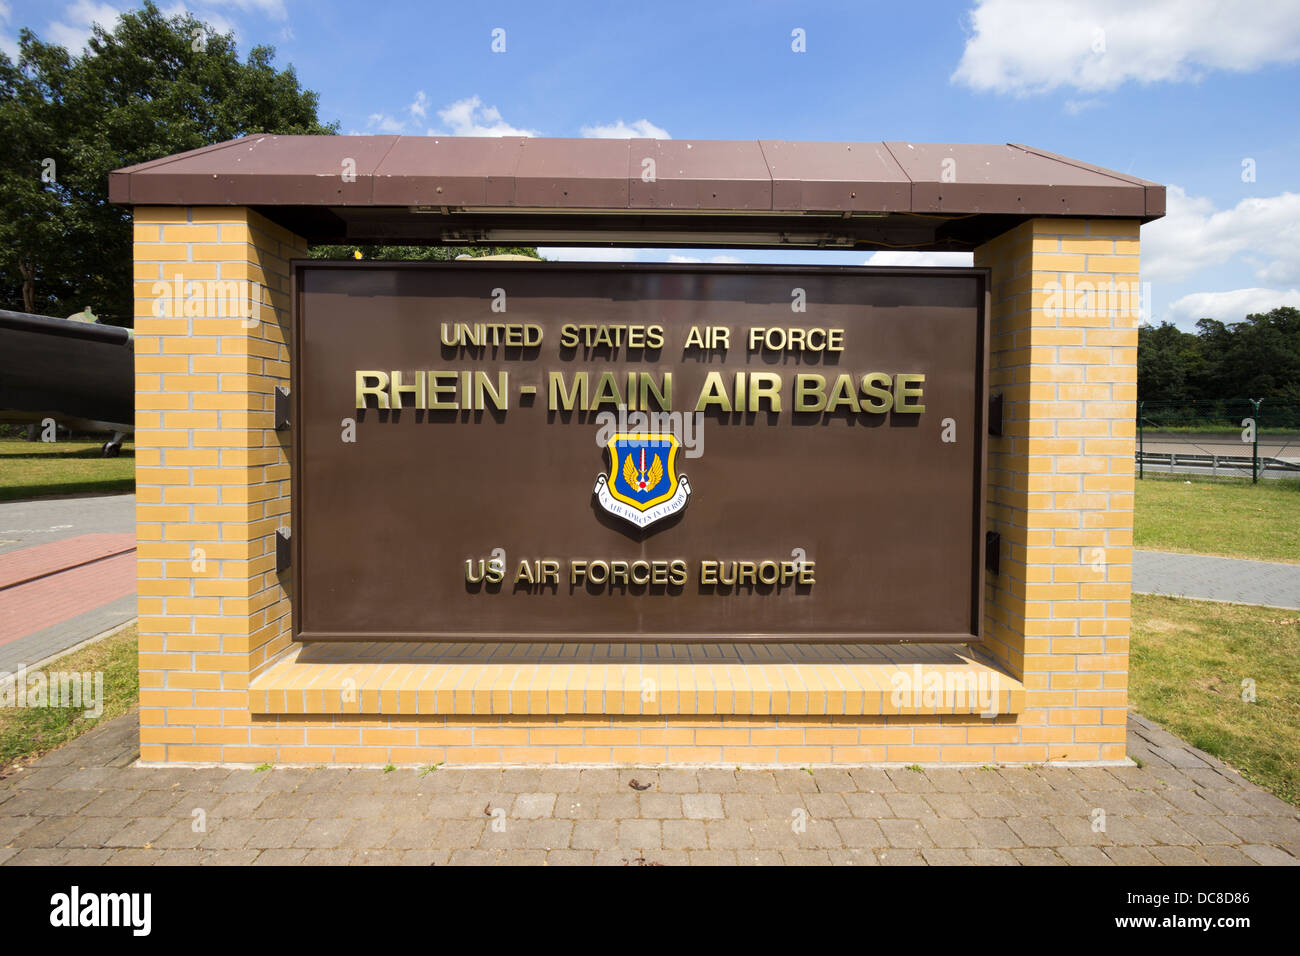 rhein main air base stock photos rhein main air base stock images alamy. Black Bedroom Furniture Sets. Home Design Ideas